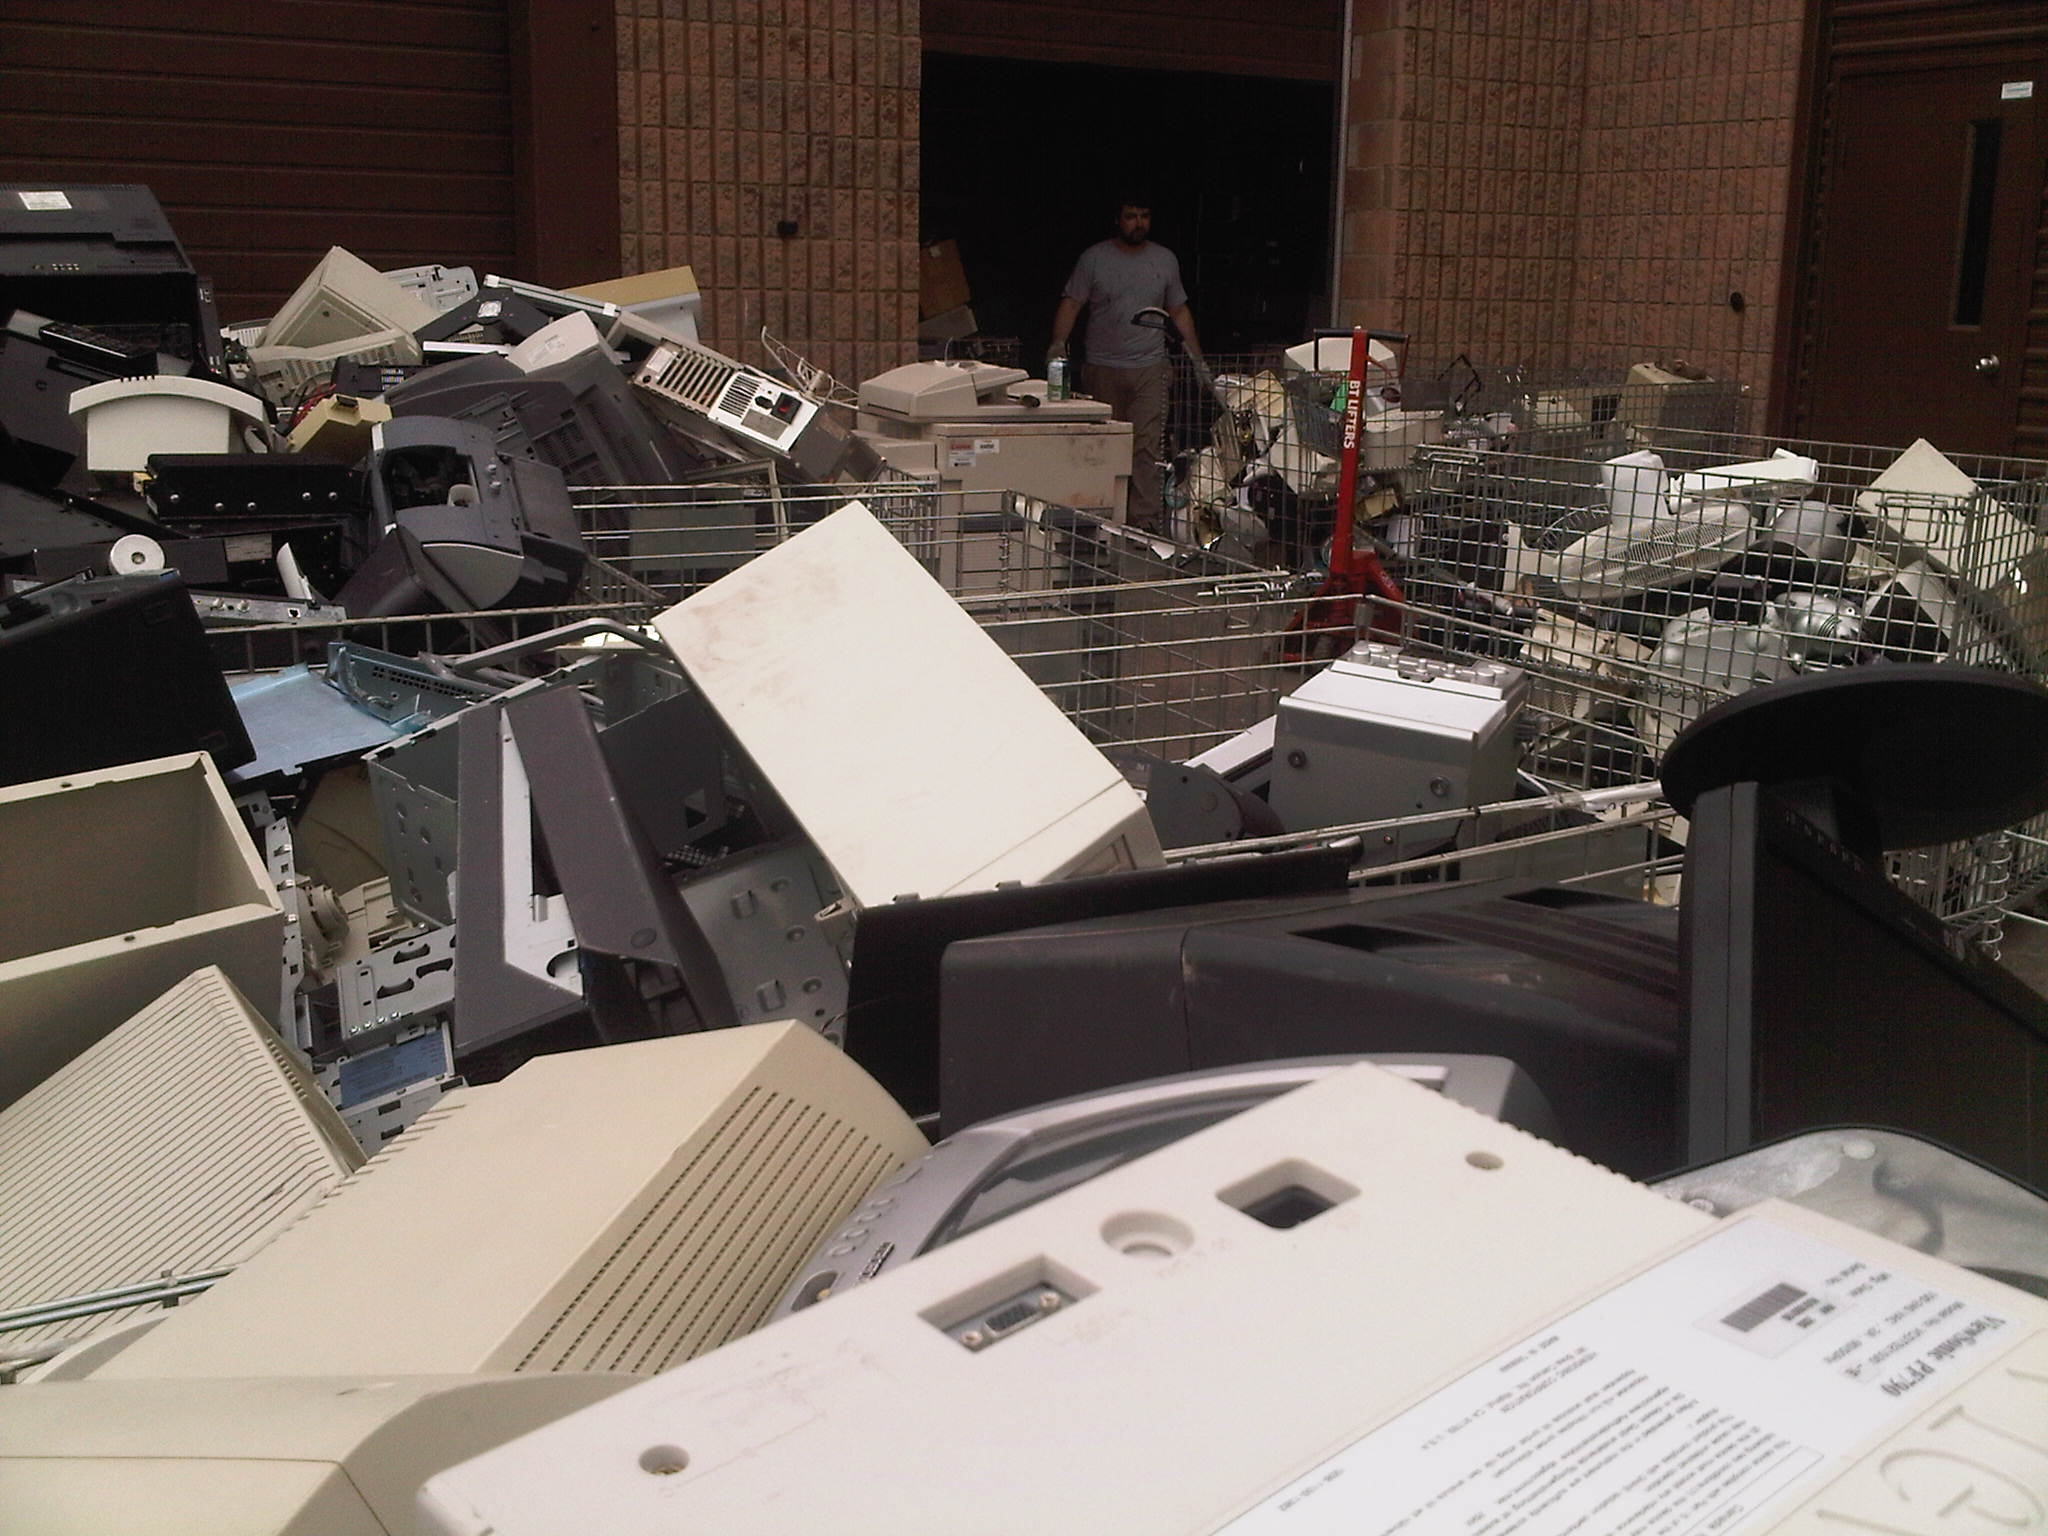 ewaste in the parking lot